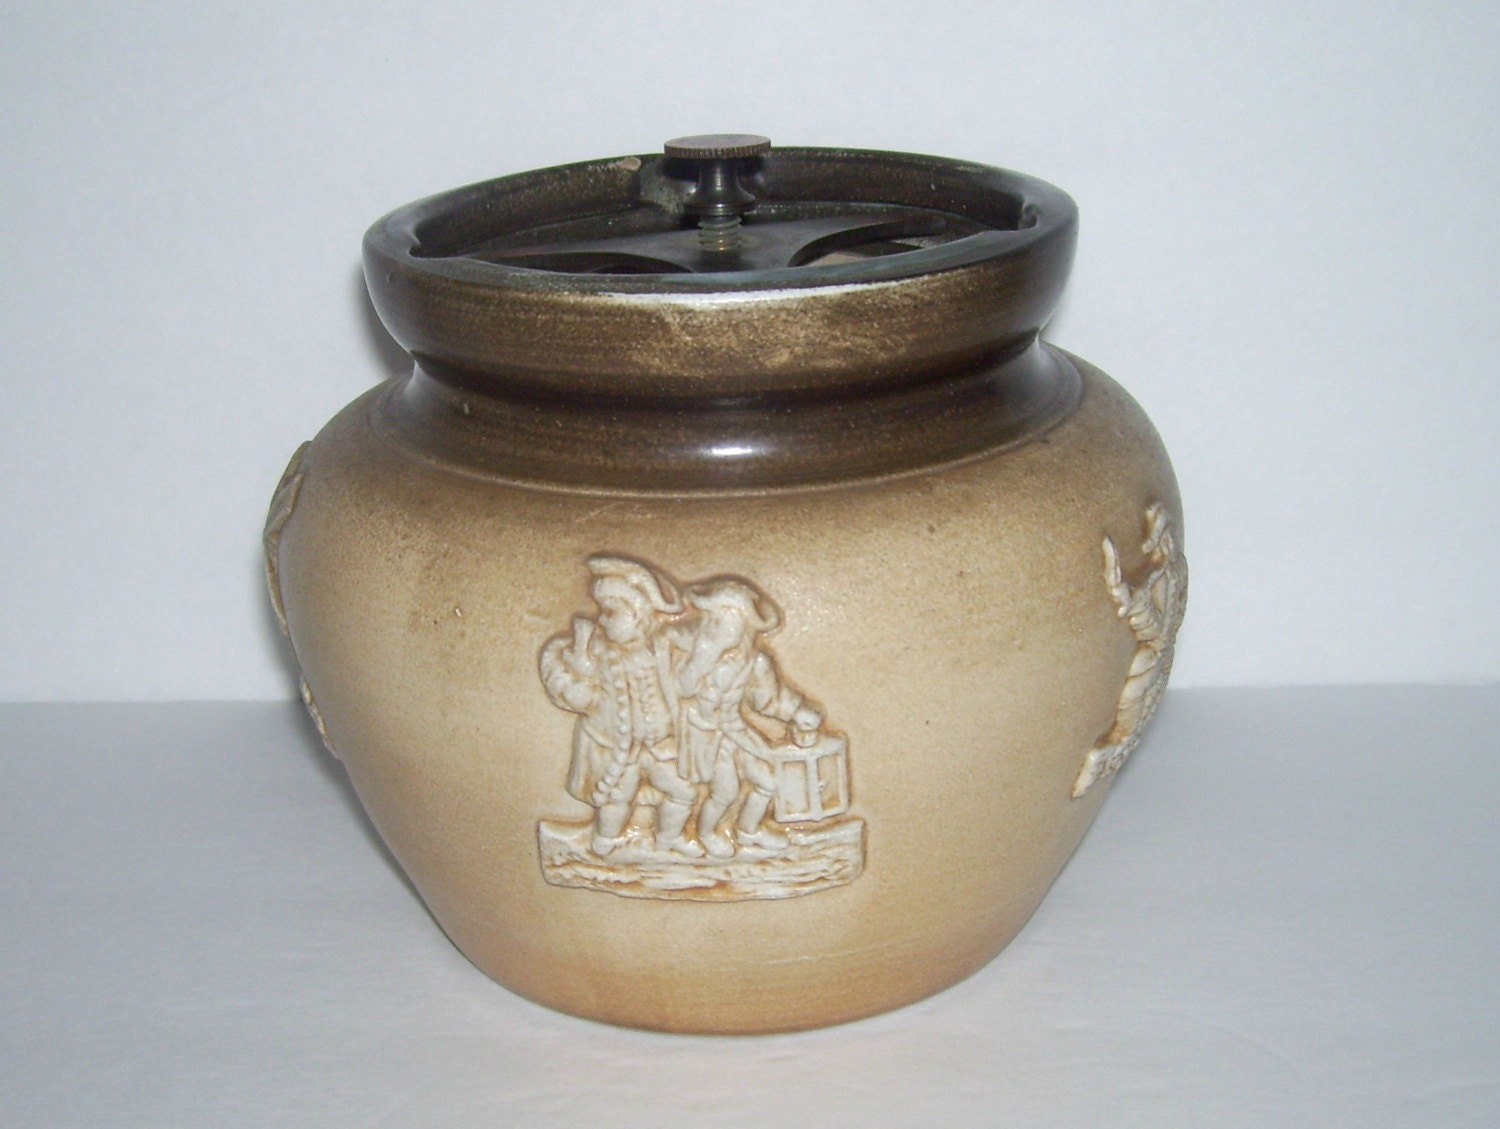 Bourne Denby Pottery Tobacco Jar Humidor Country Drinking